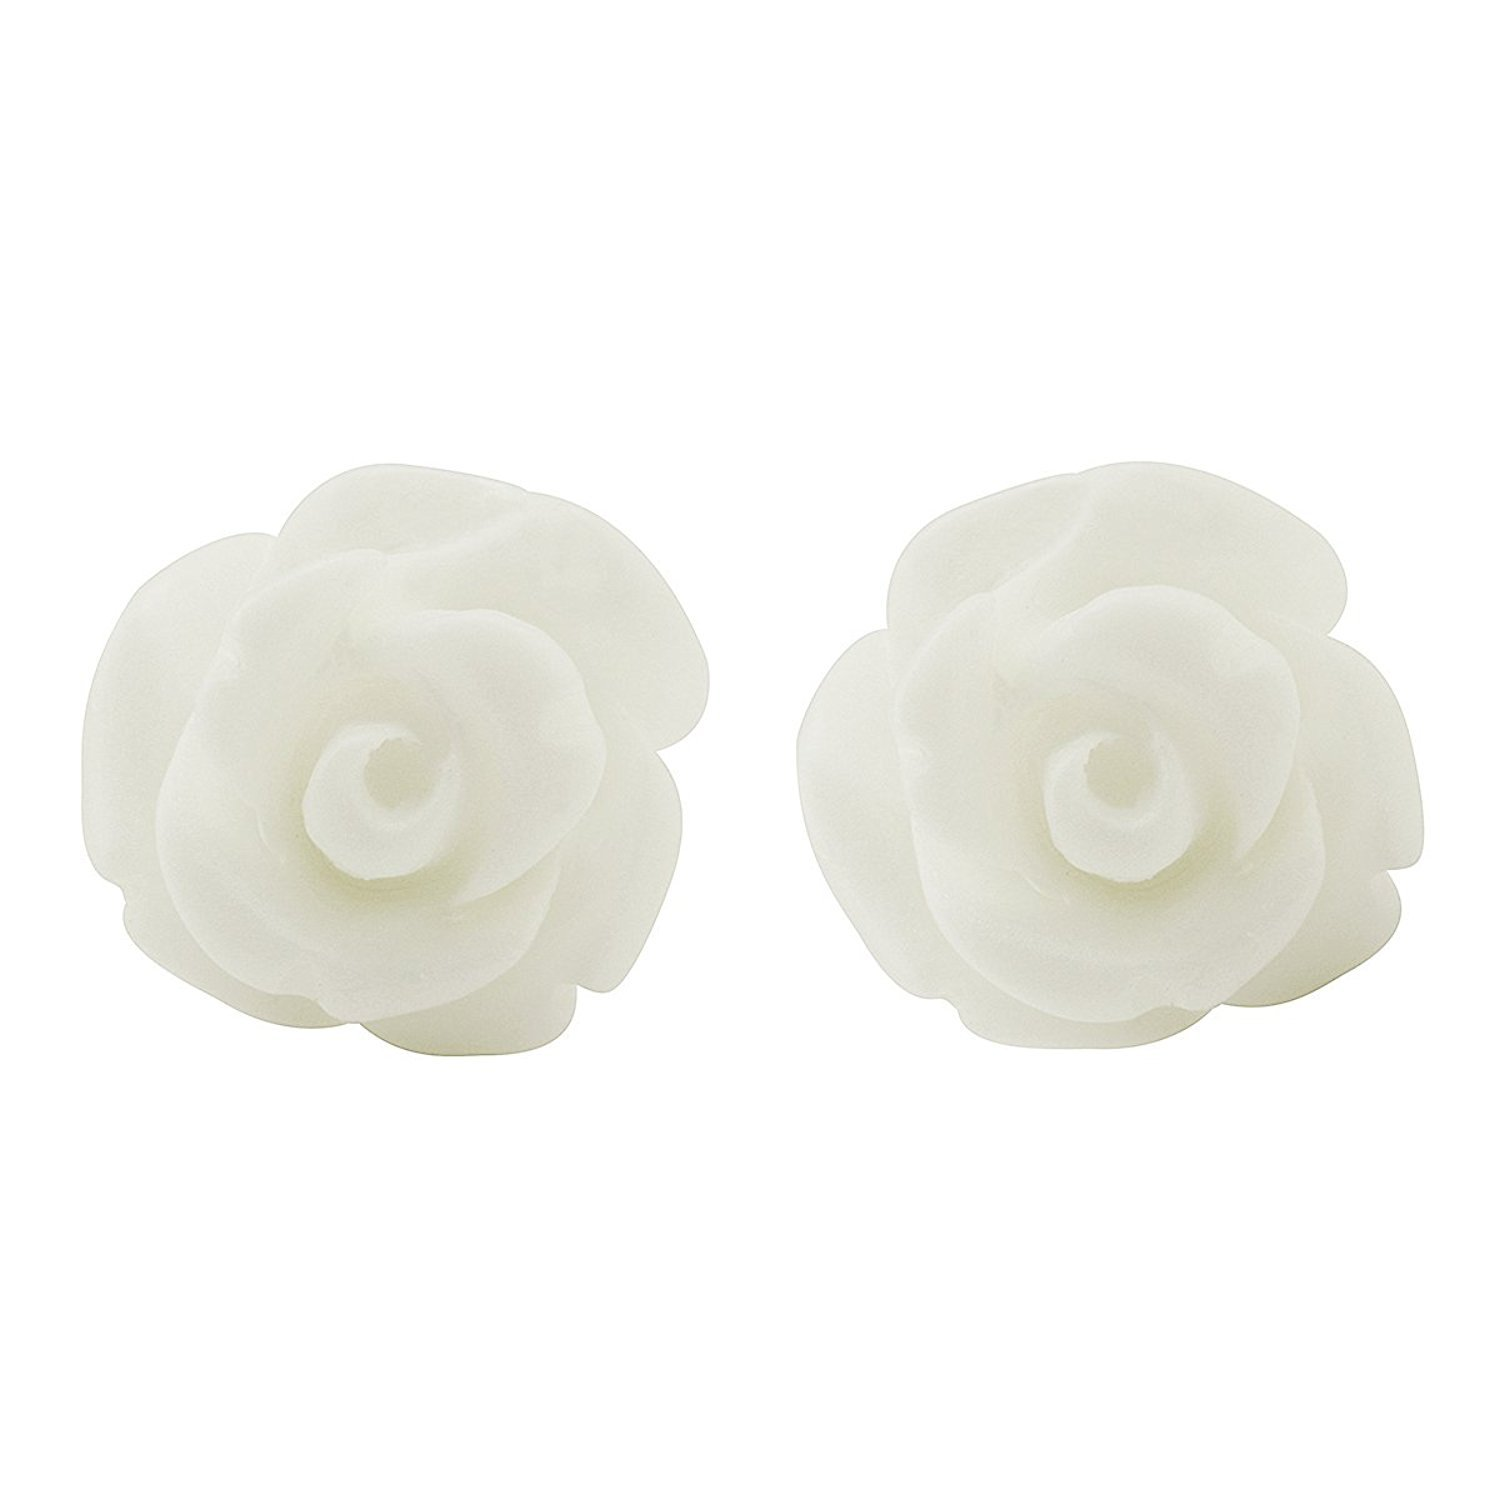 side prices beads pin online flower shop big sale for brands crystal stud double intl earrings chic womens rose